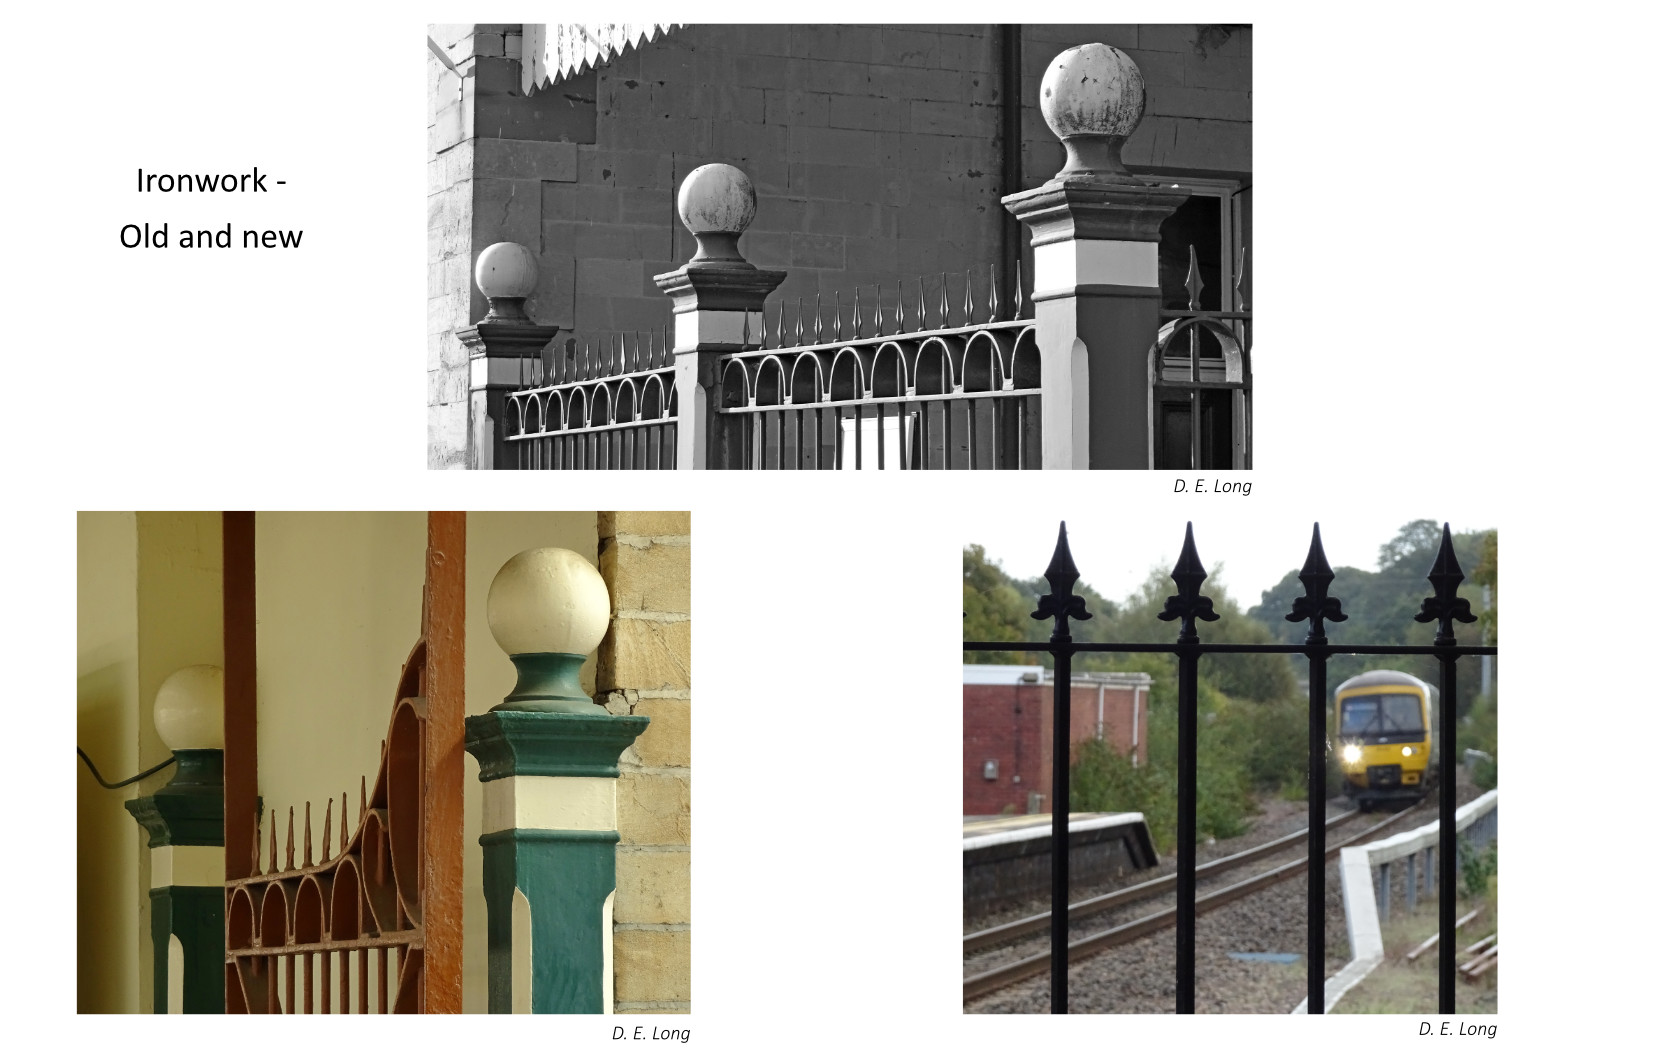 Three photographs of close up detail of ironwork at the station